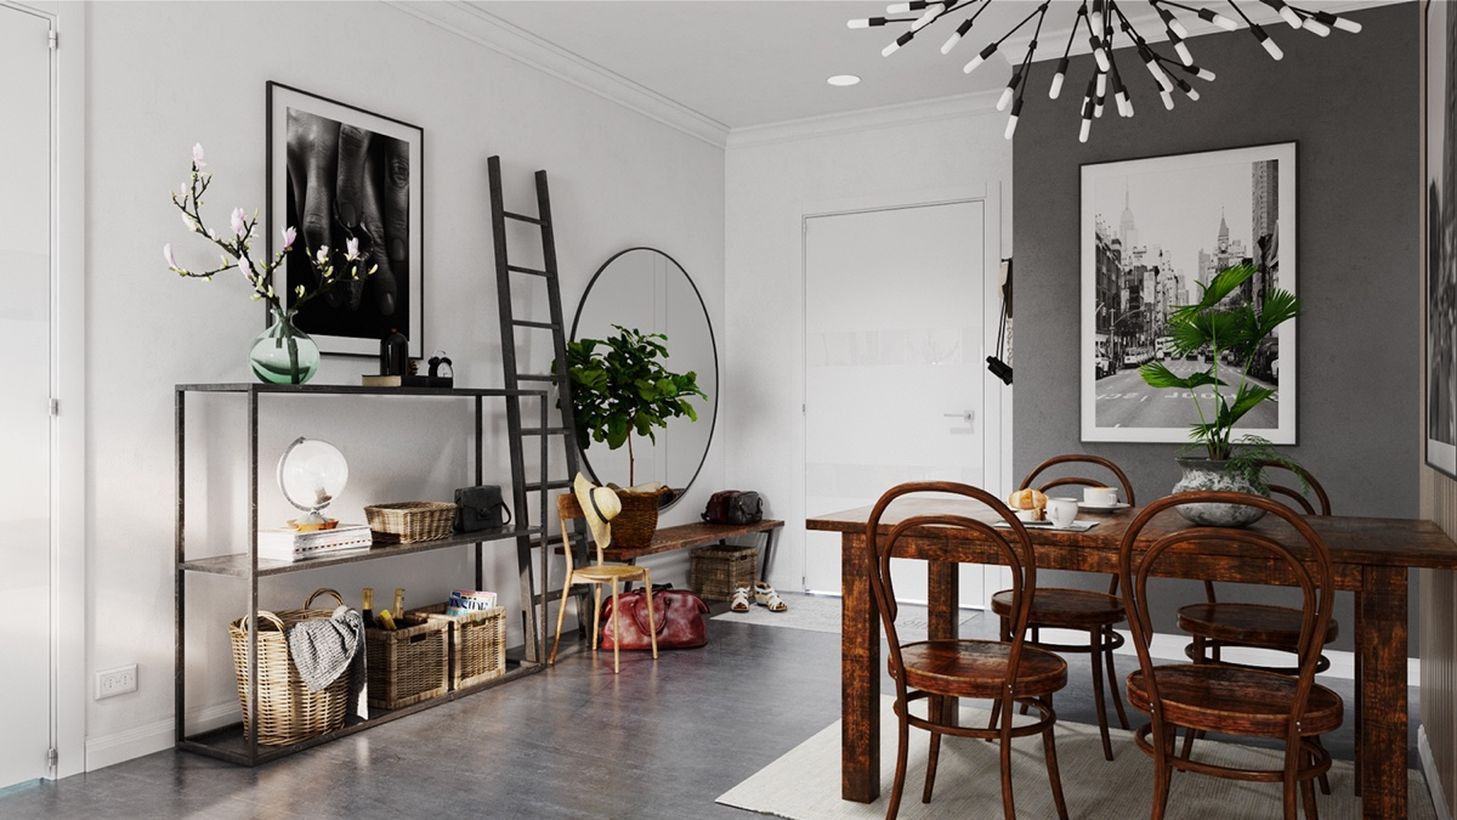 An interesting grey dining room with white and grey walls, a black and white led, and wooden furniture